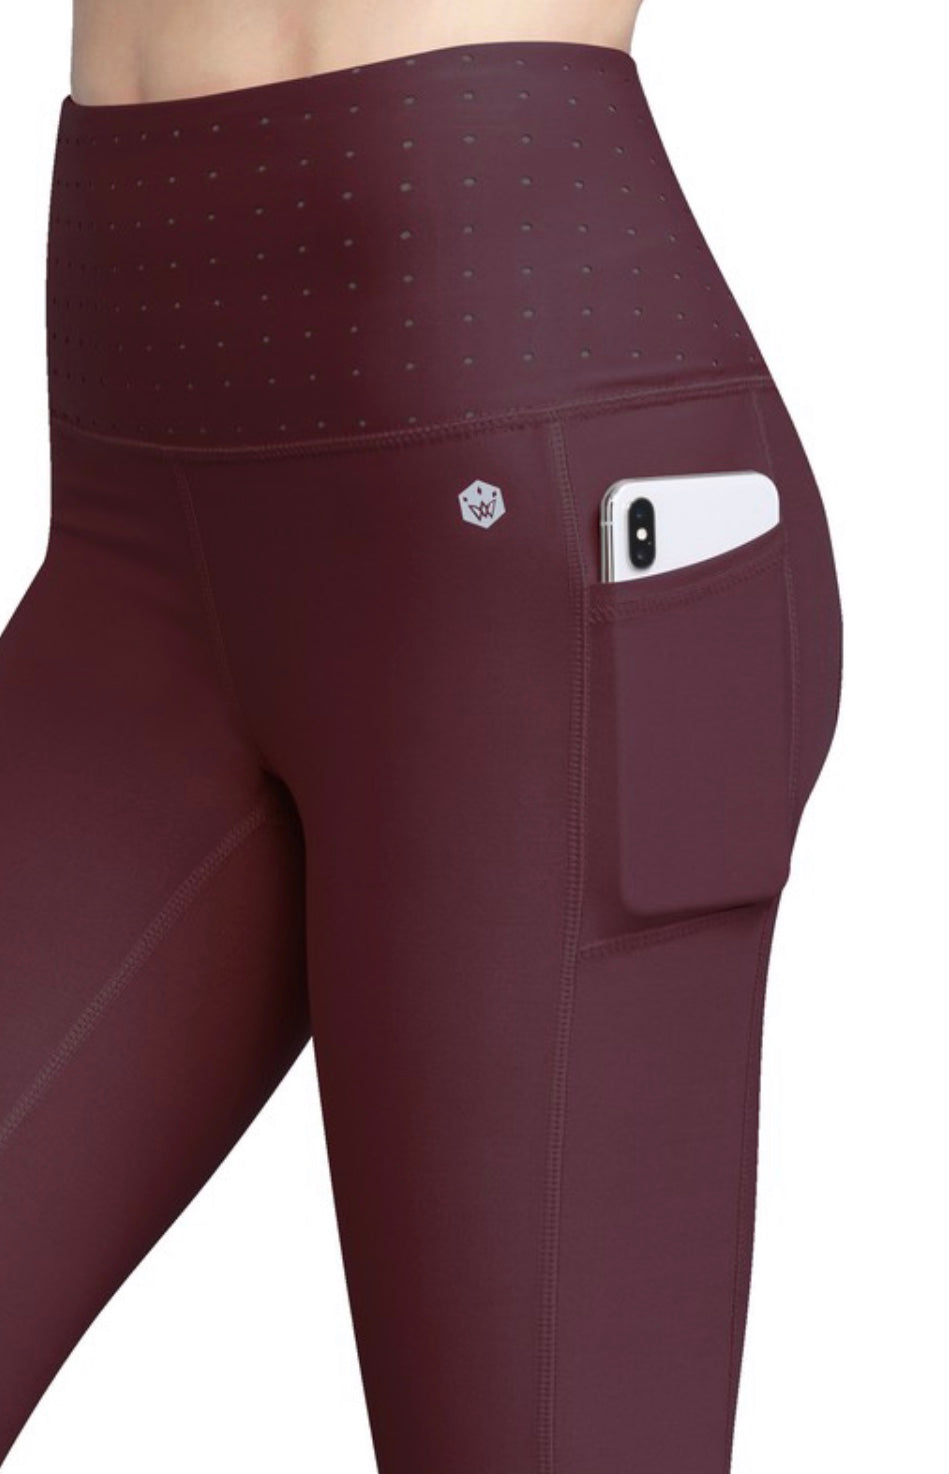 Form Leggings (wine)